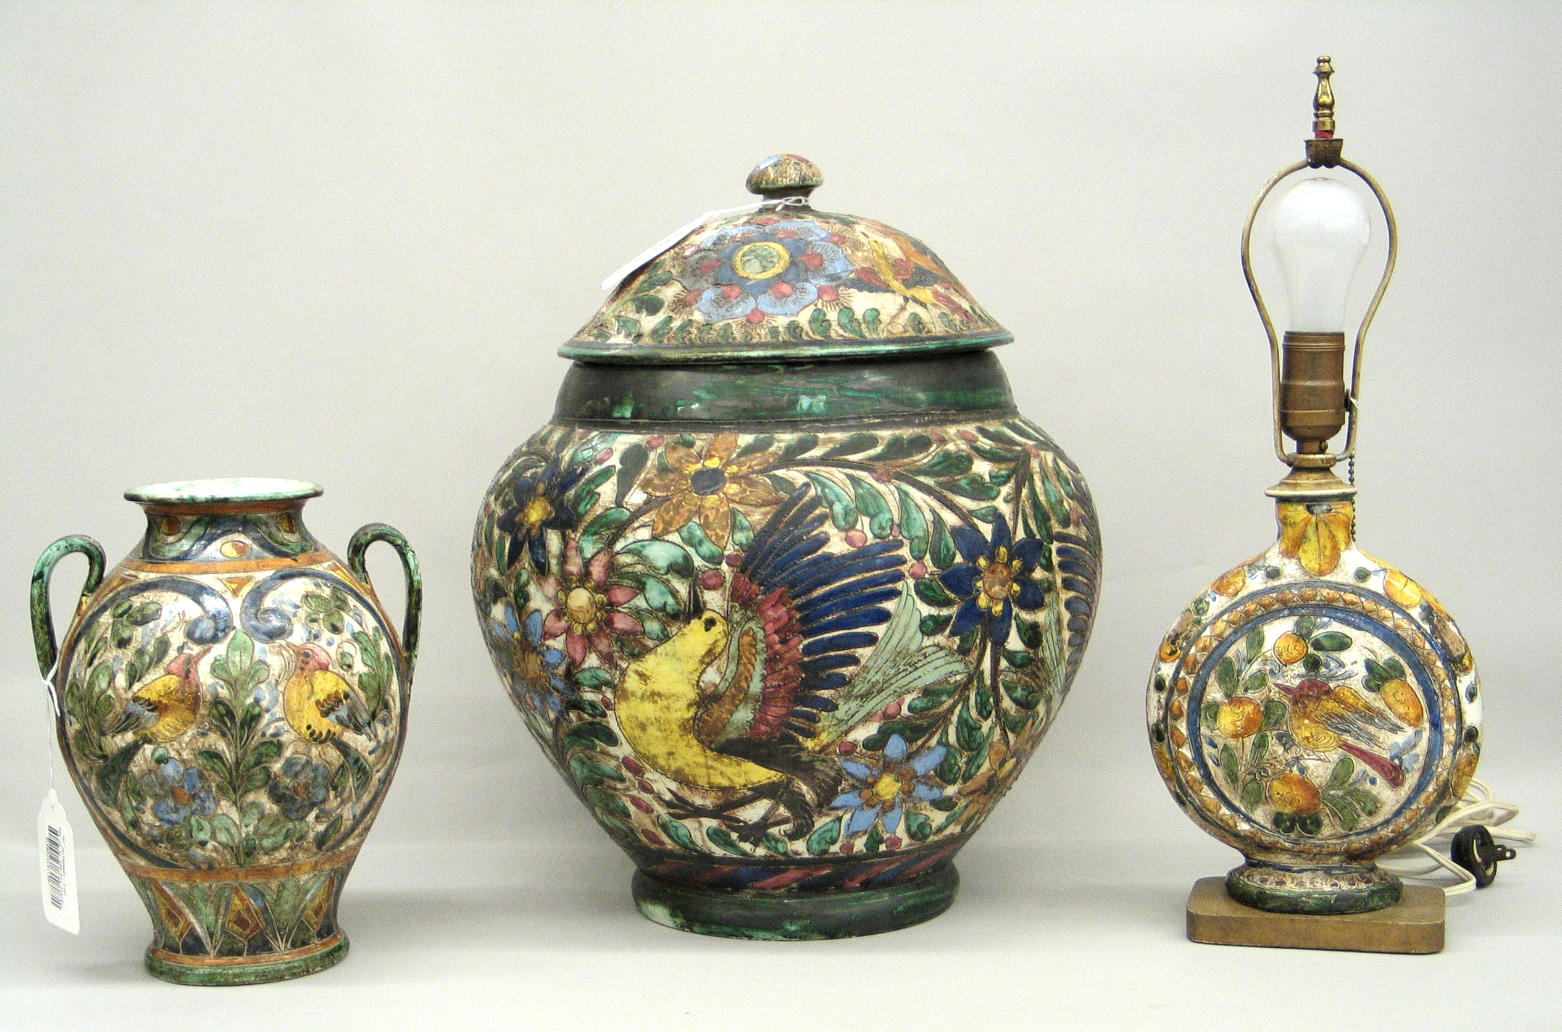 A group of Italian polychrome glazed and sgraffito decorated pottery